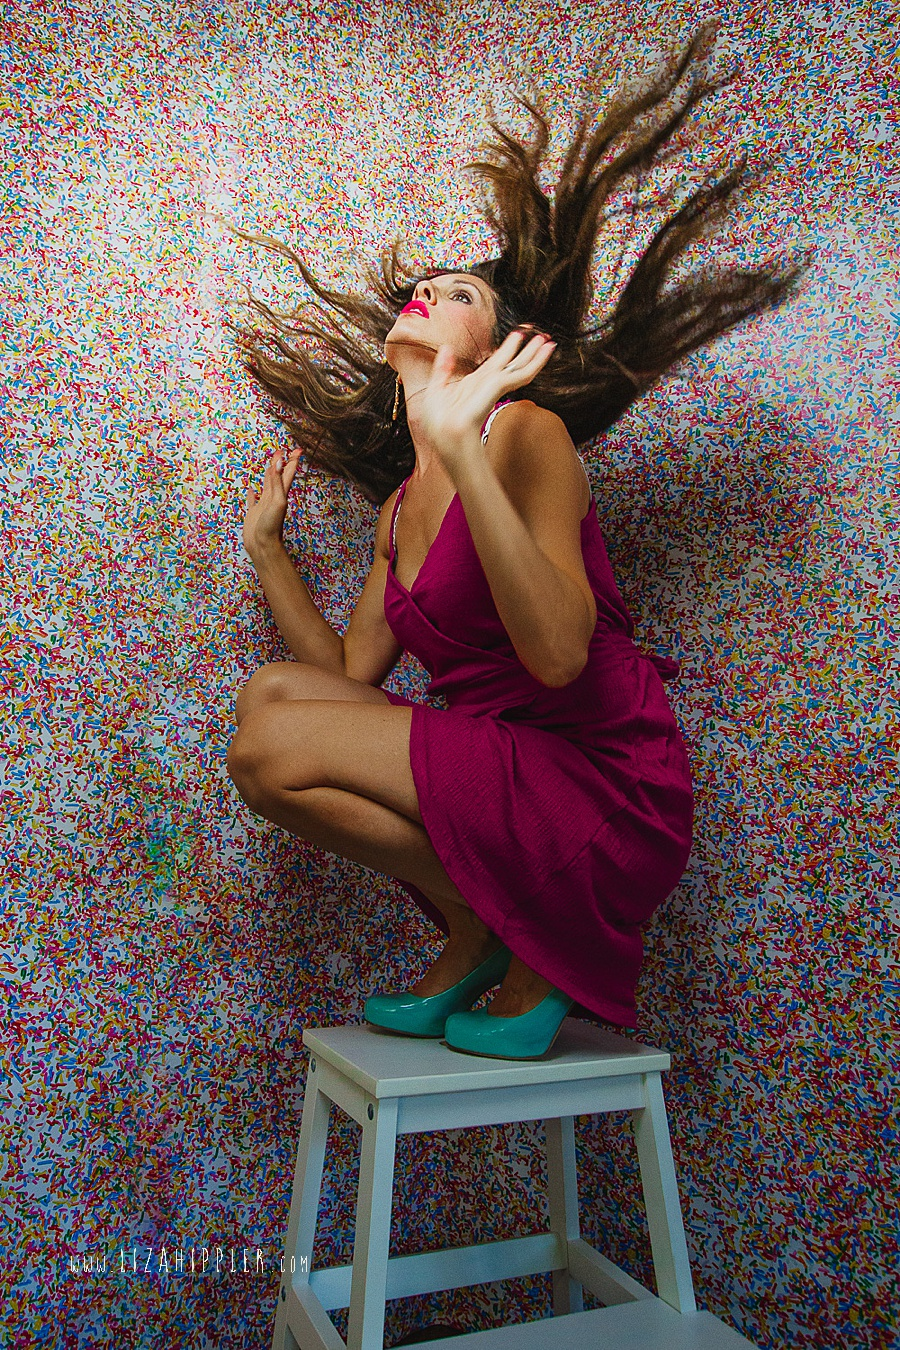 creative and colorful self portrait